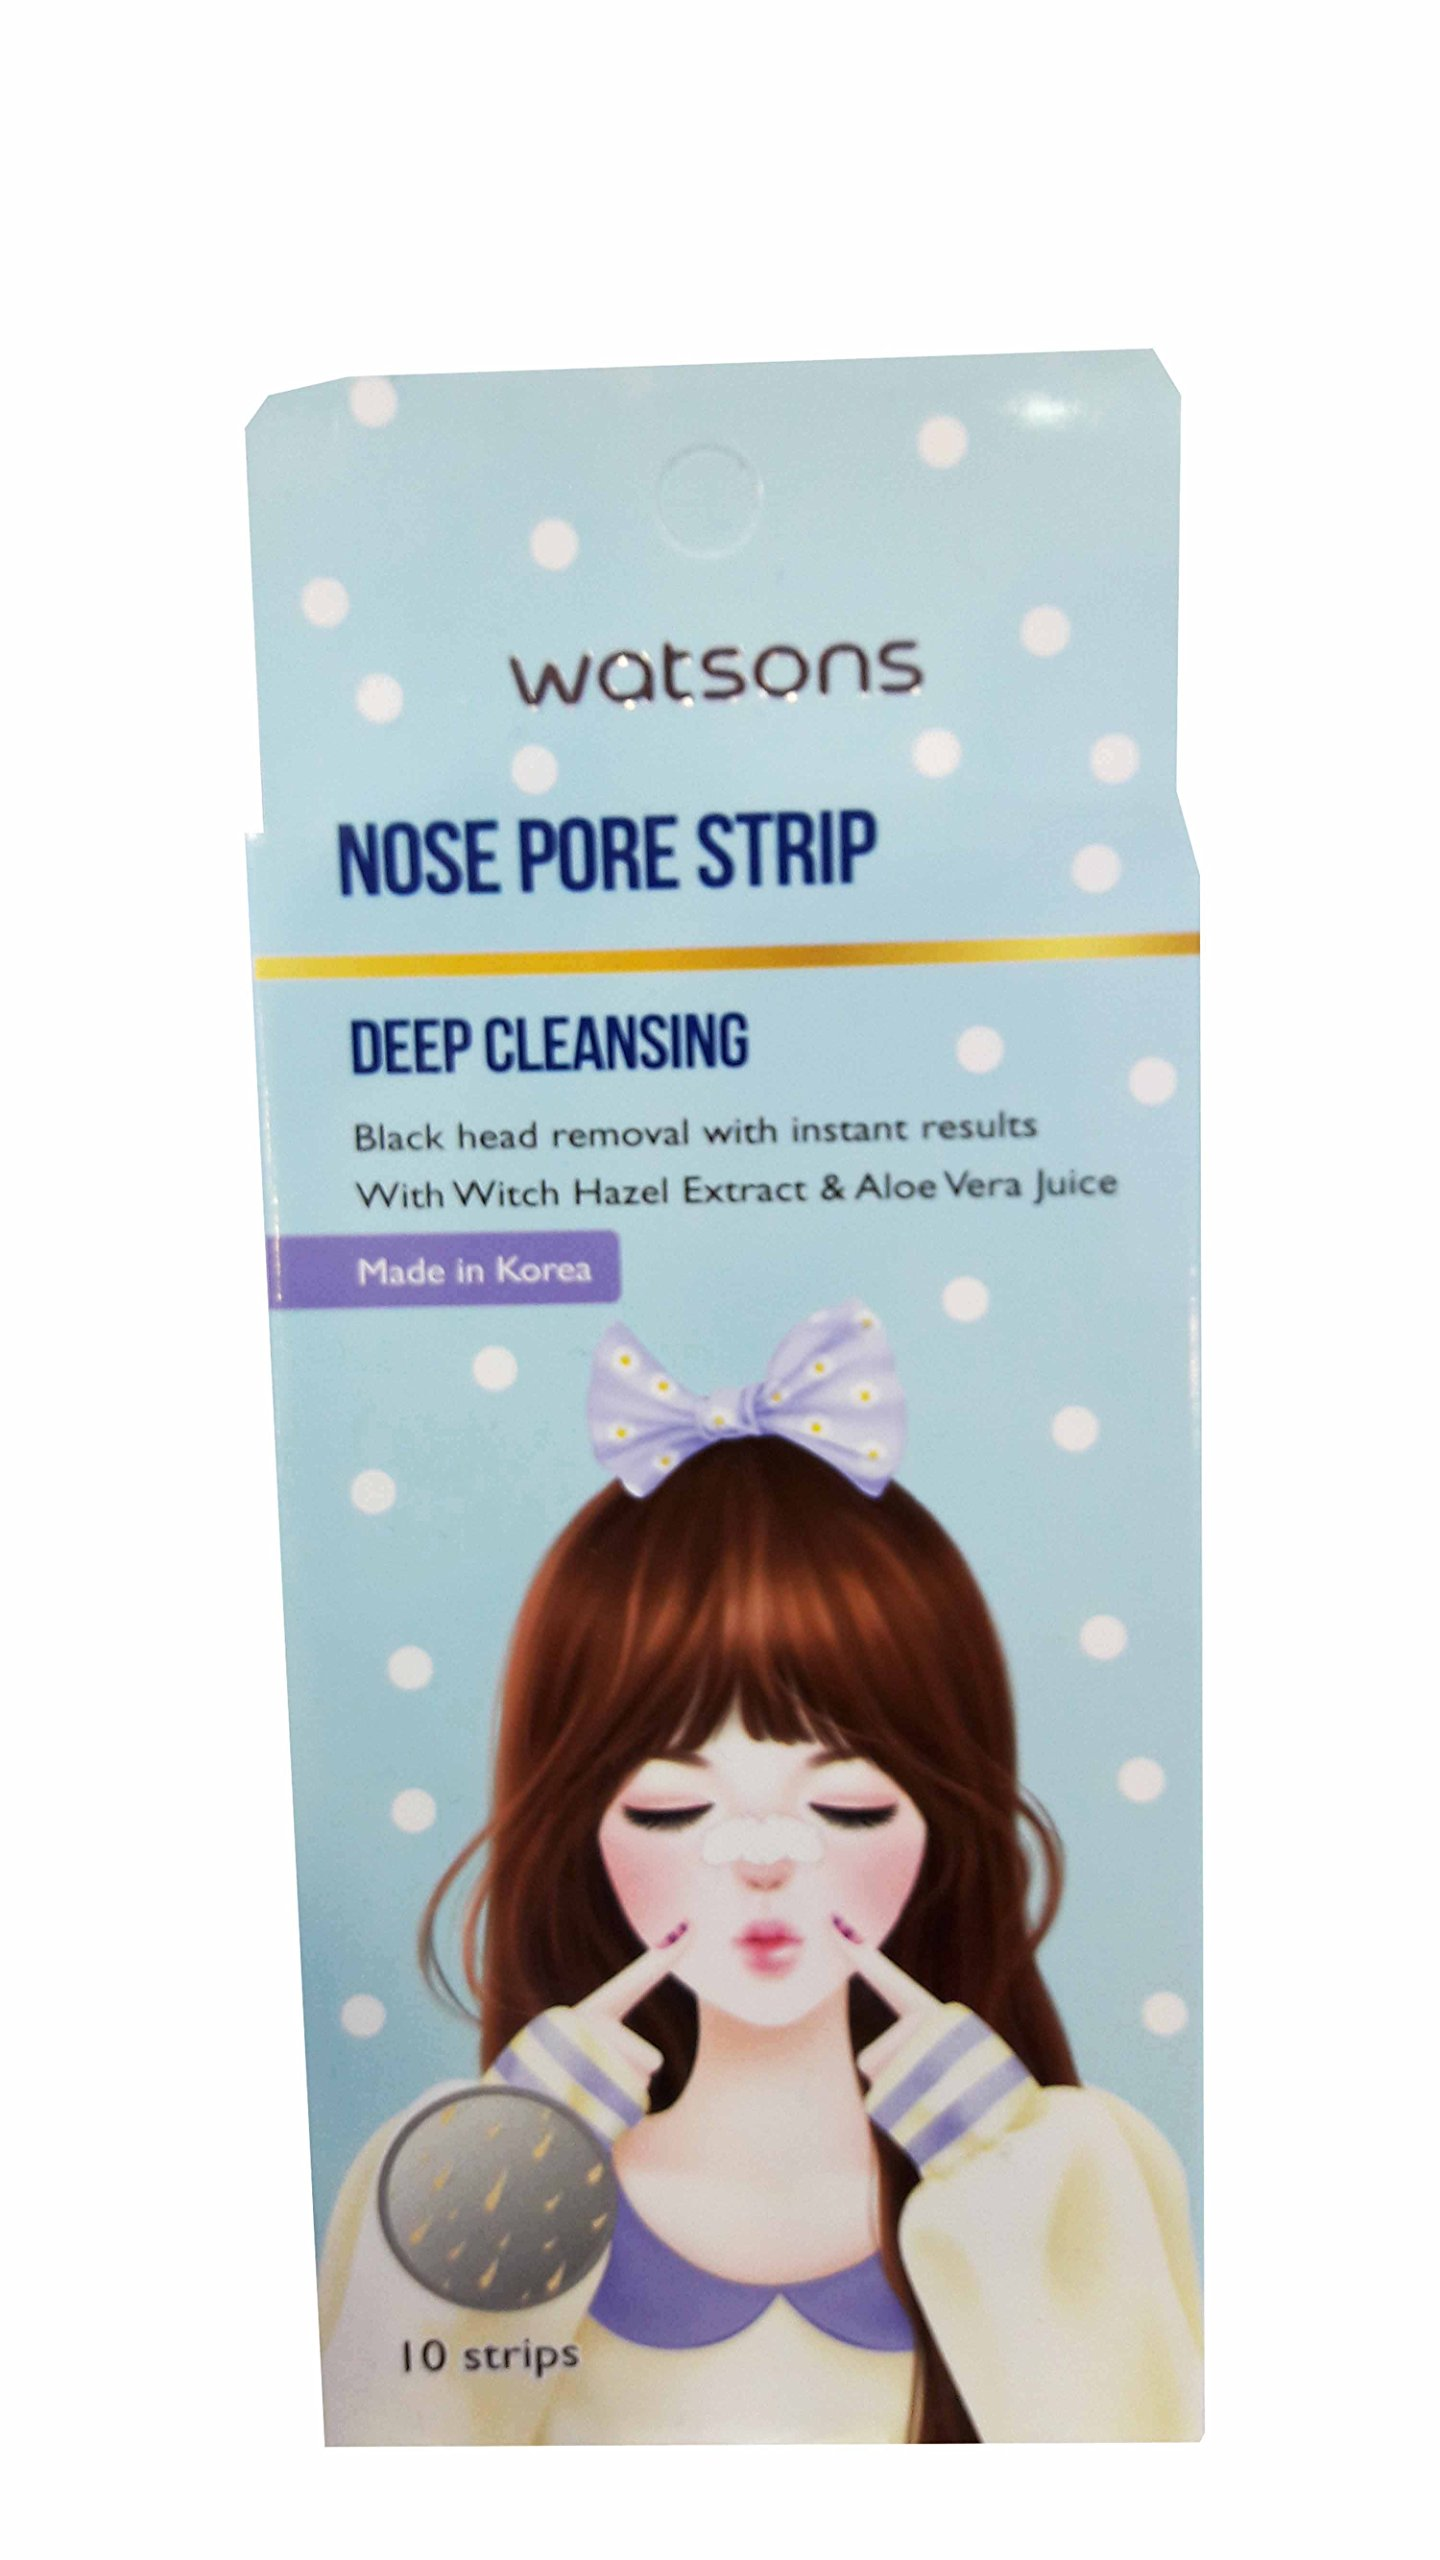 4 Packs of Watsons Deep Cleansing Nose Pore Strips with Witch Hazel Extract and Aloe Vera Juice. (10 Strips/Pack)